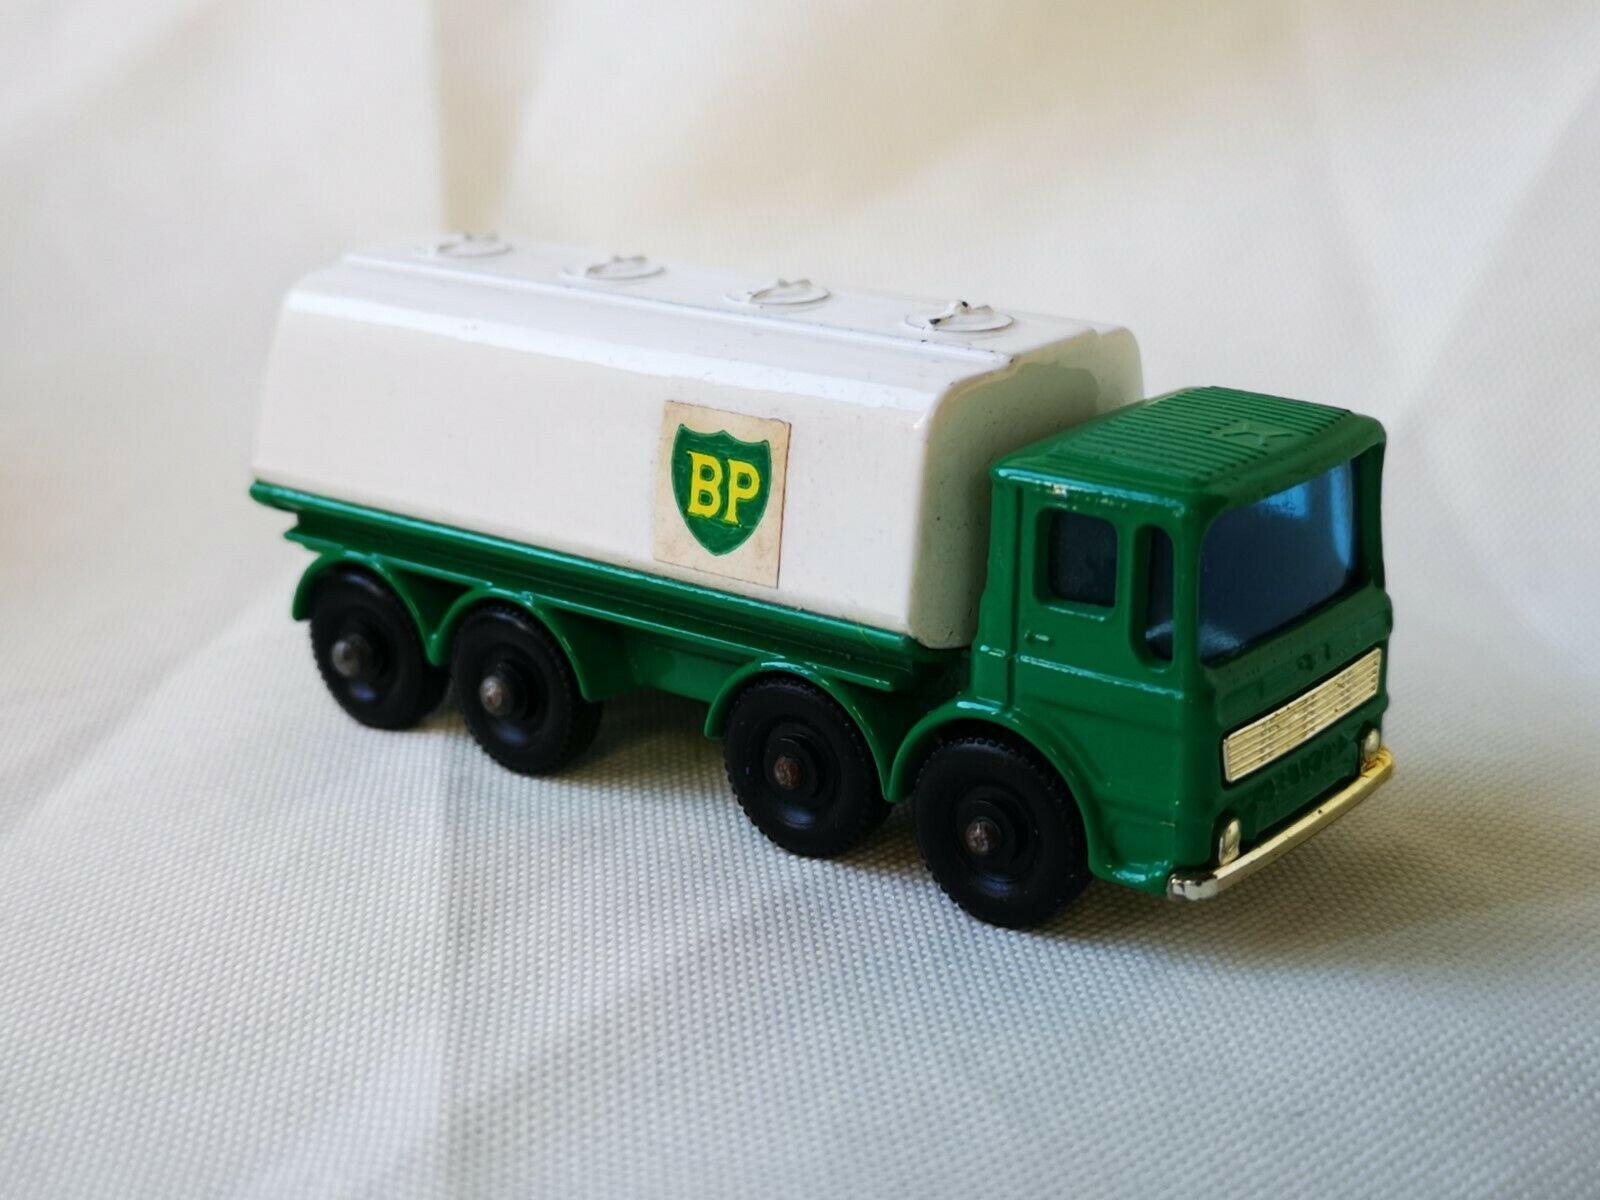 Matchbox Lesney no. 32 Leyland Petrol Tanker BP Boxed Boxed Boxed df7911